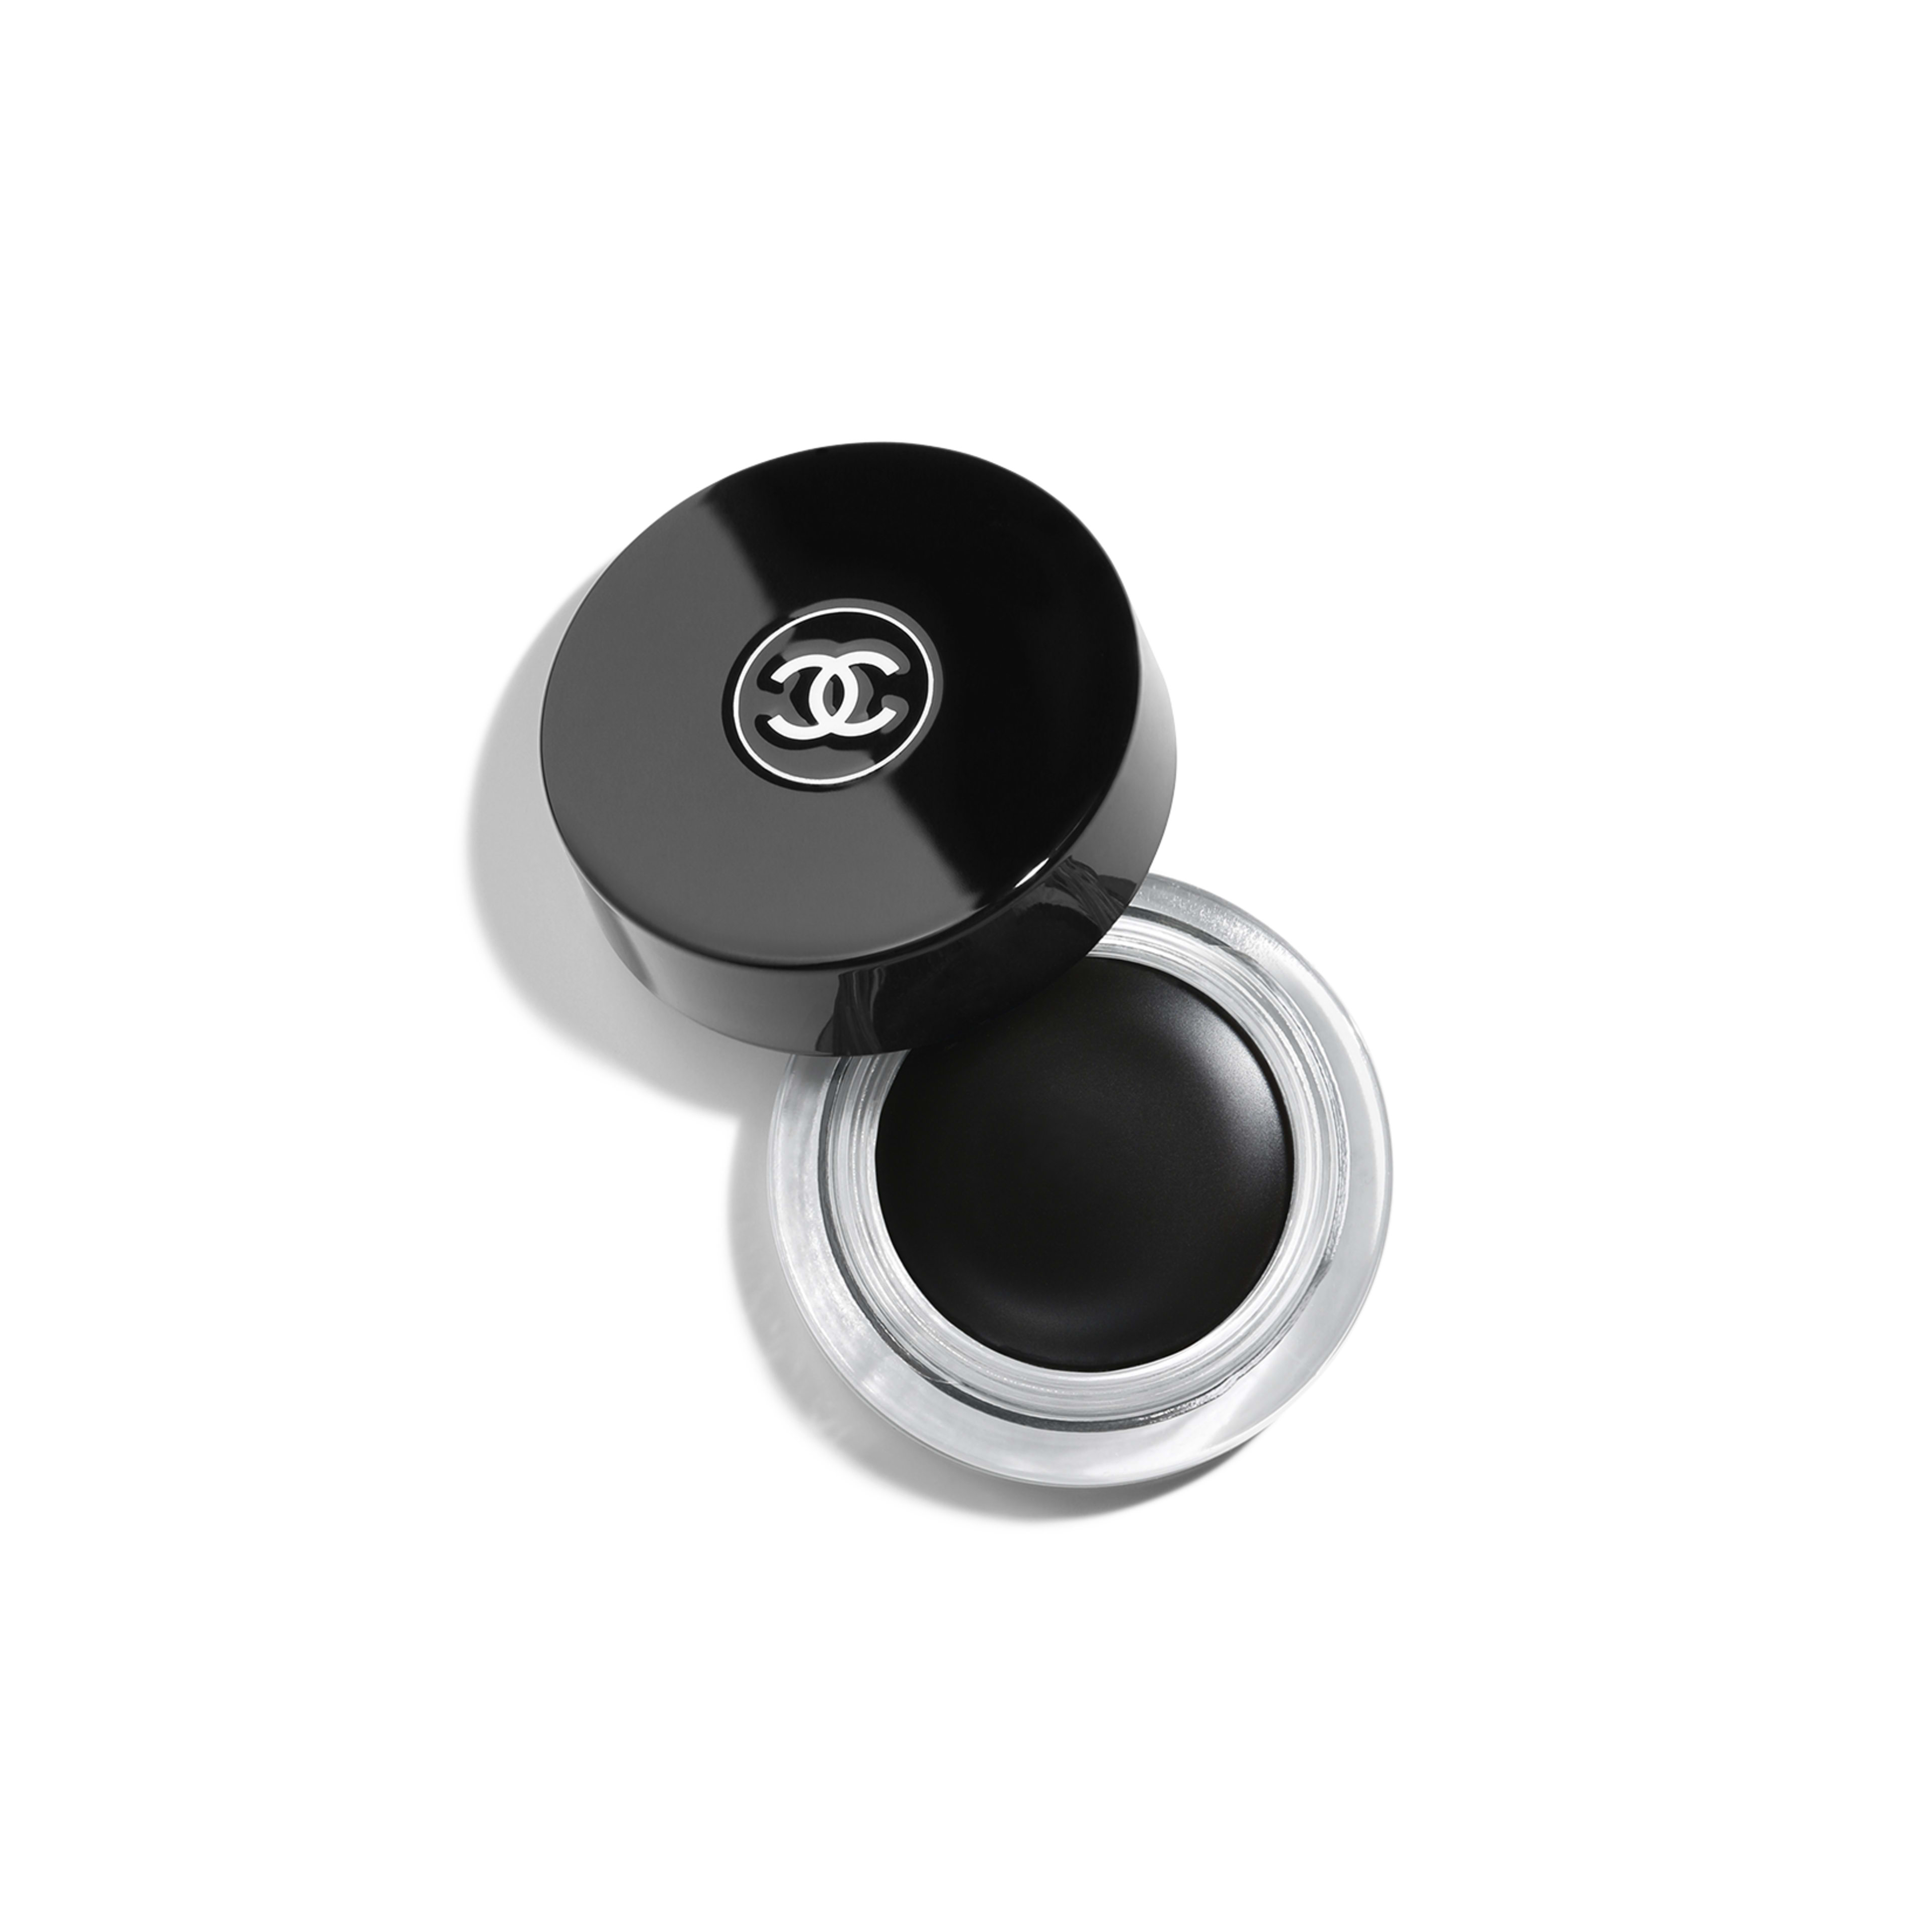 CALLIGRAPHIE DE CHANEL - makeup - 0.14OZ. -                                                            default view - see full sized version